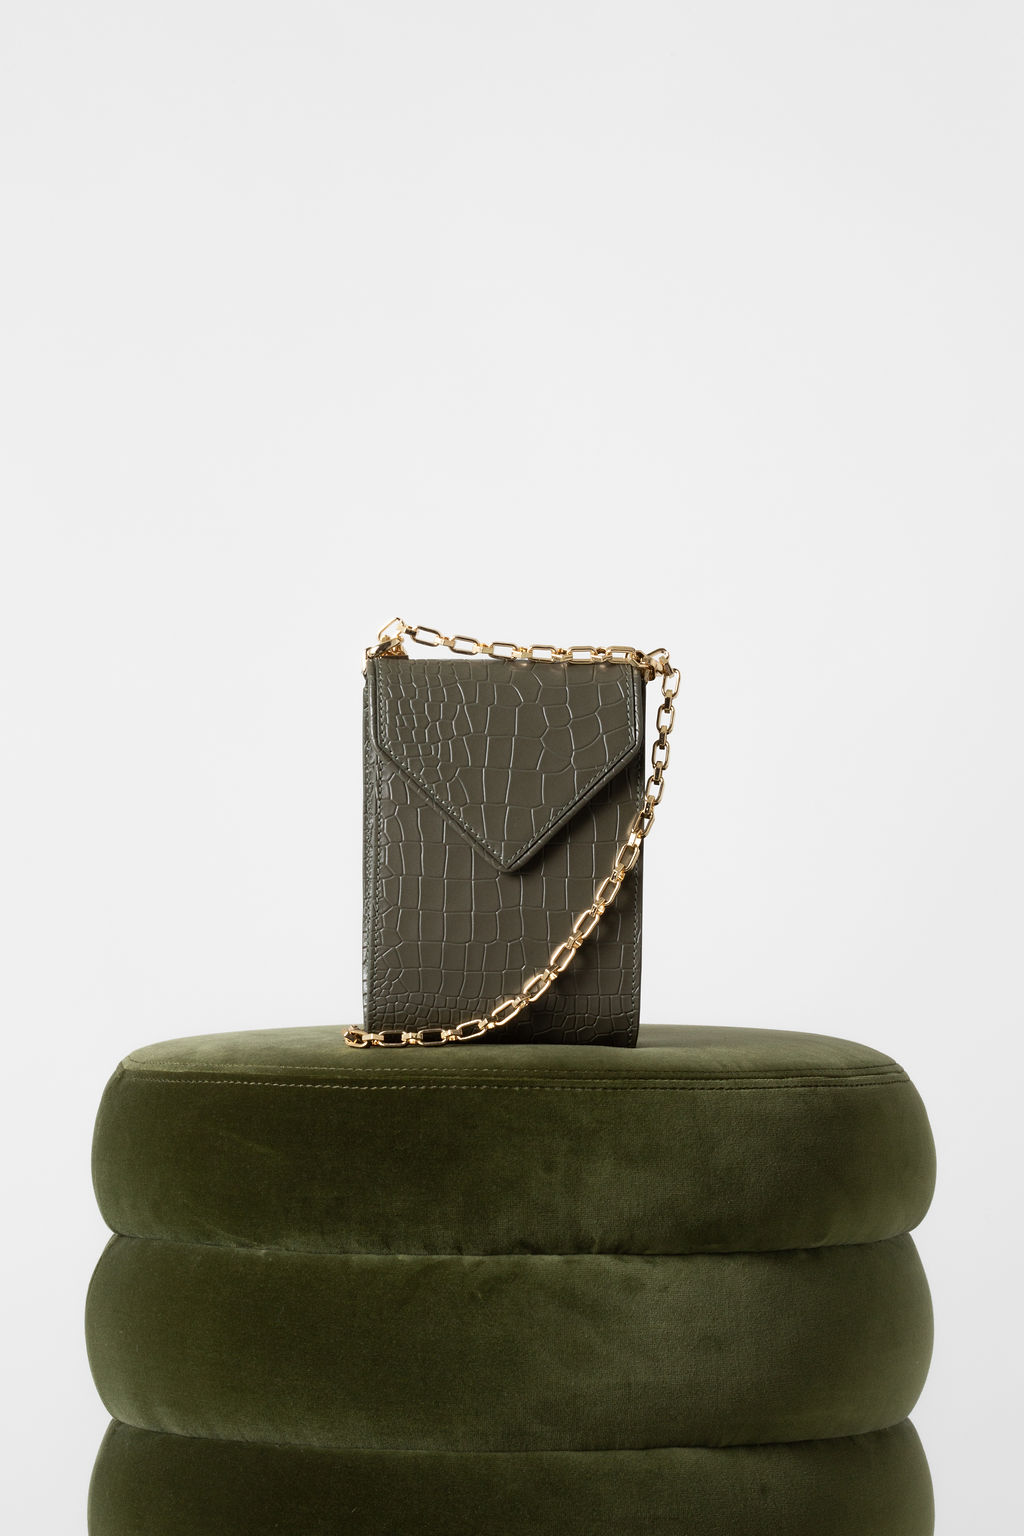 Isabel Phone Pouch In Military Green Croc